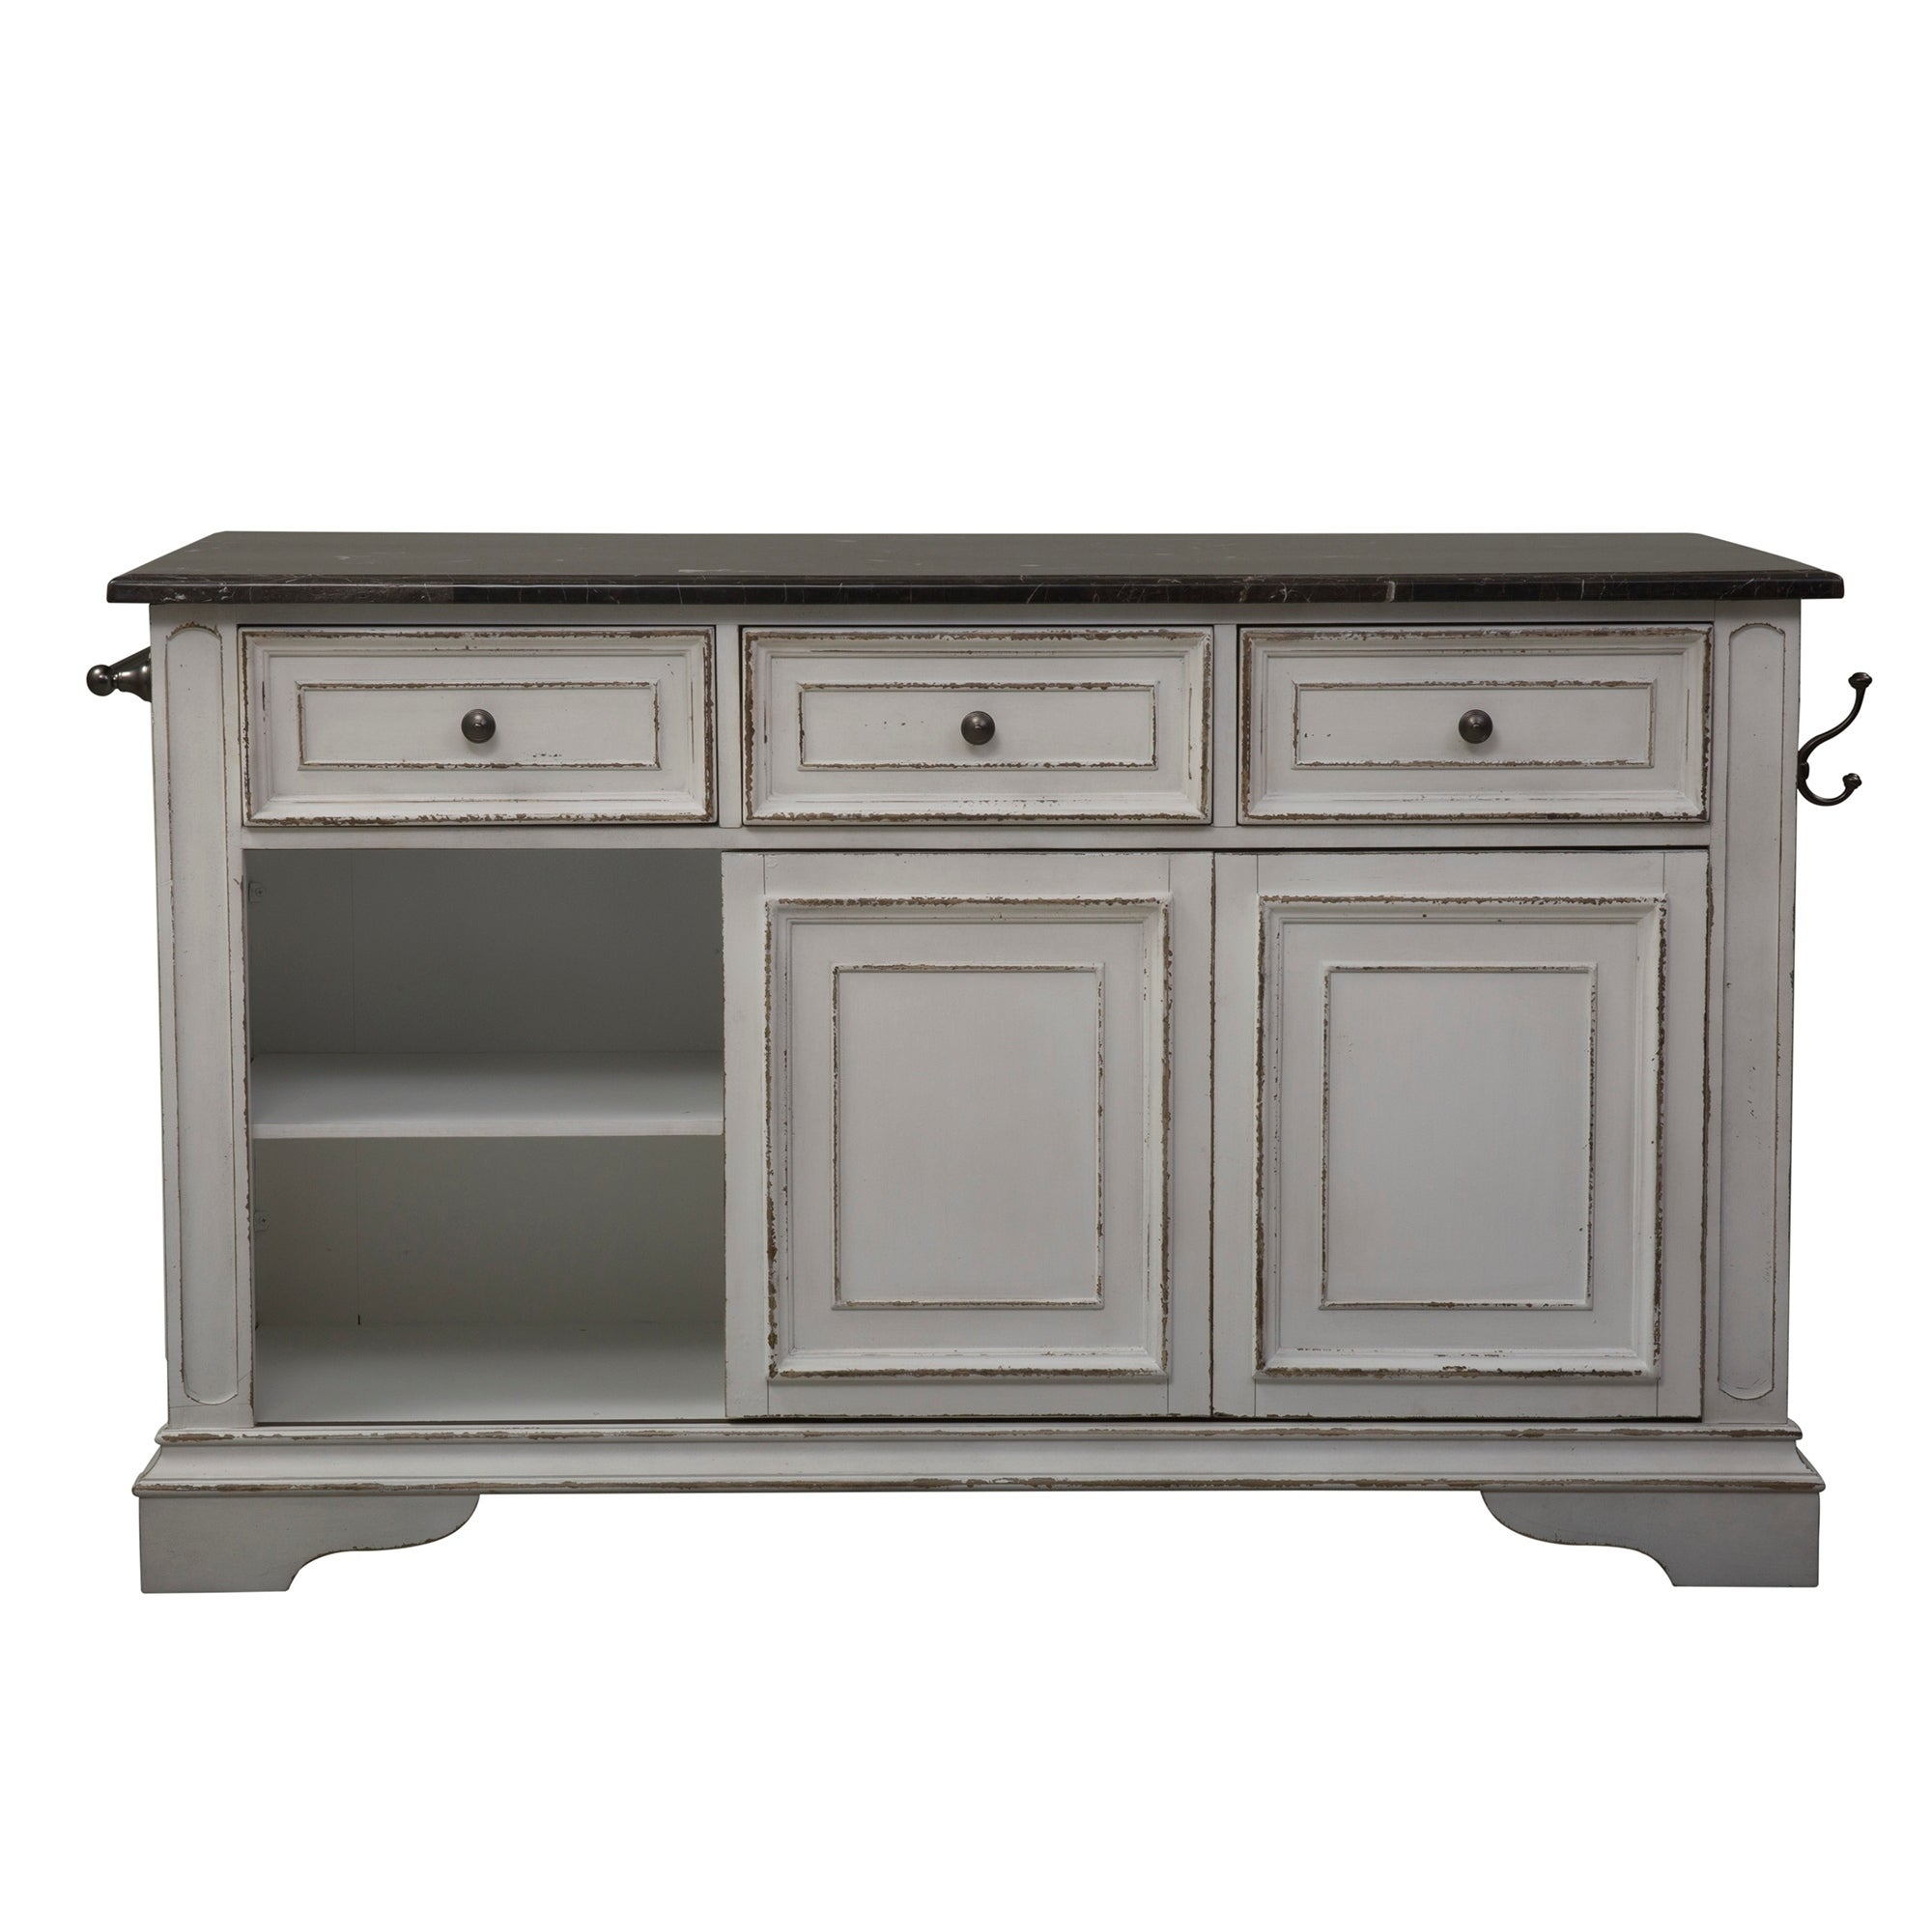 Delicieux Shop Magnolia Manor Antique White Kitchen Island With Granite Top   Free  Shipping Today   Overstock.com   18619067